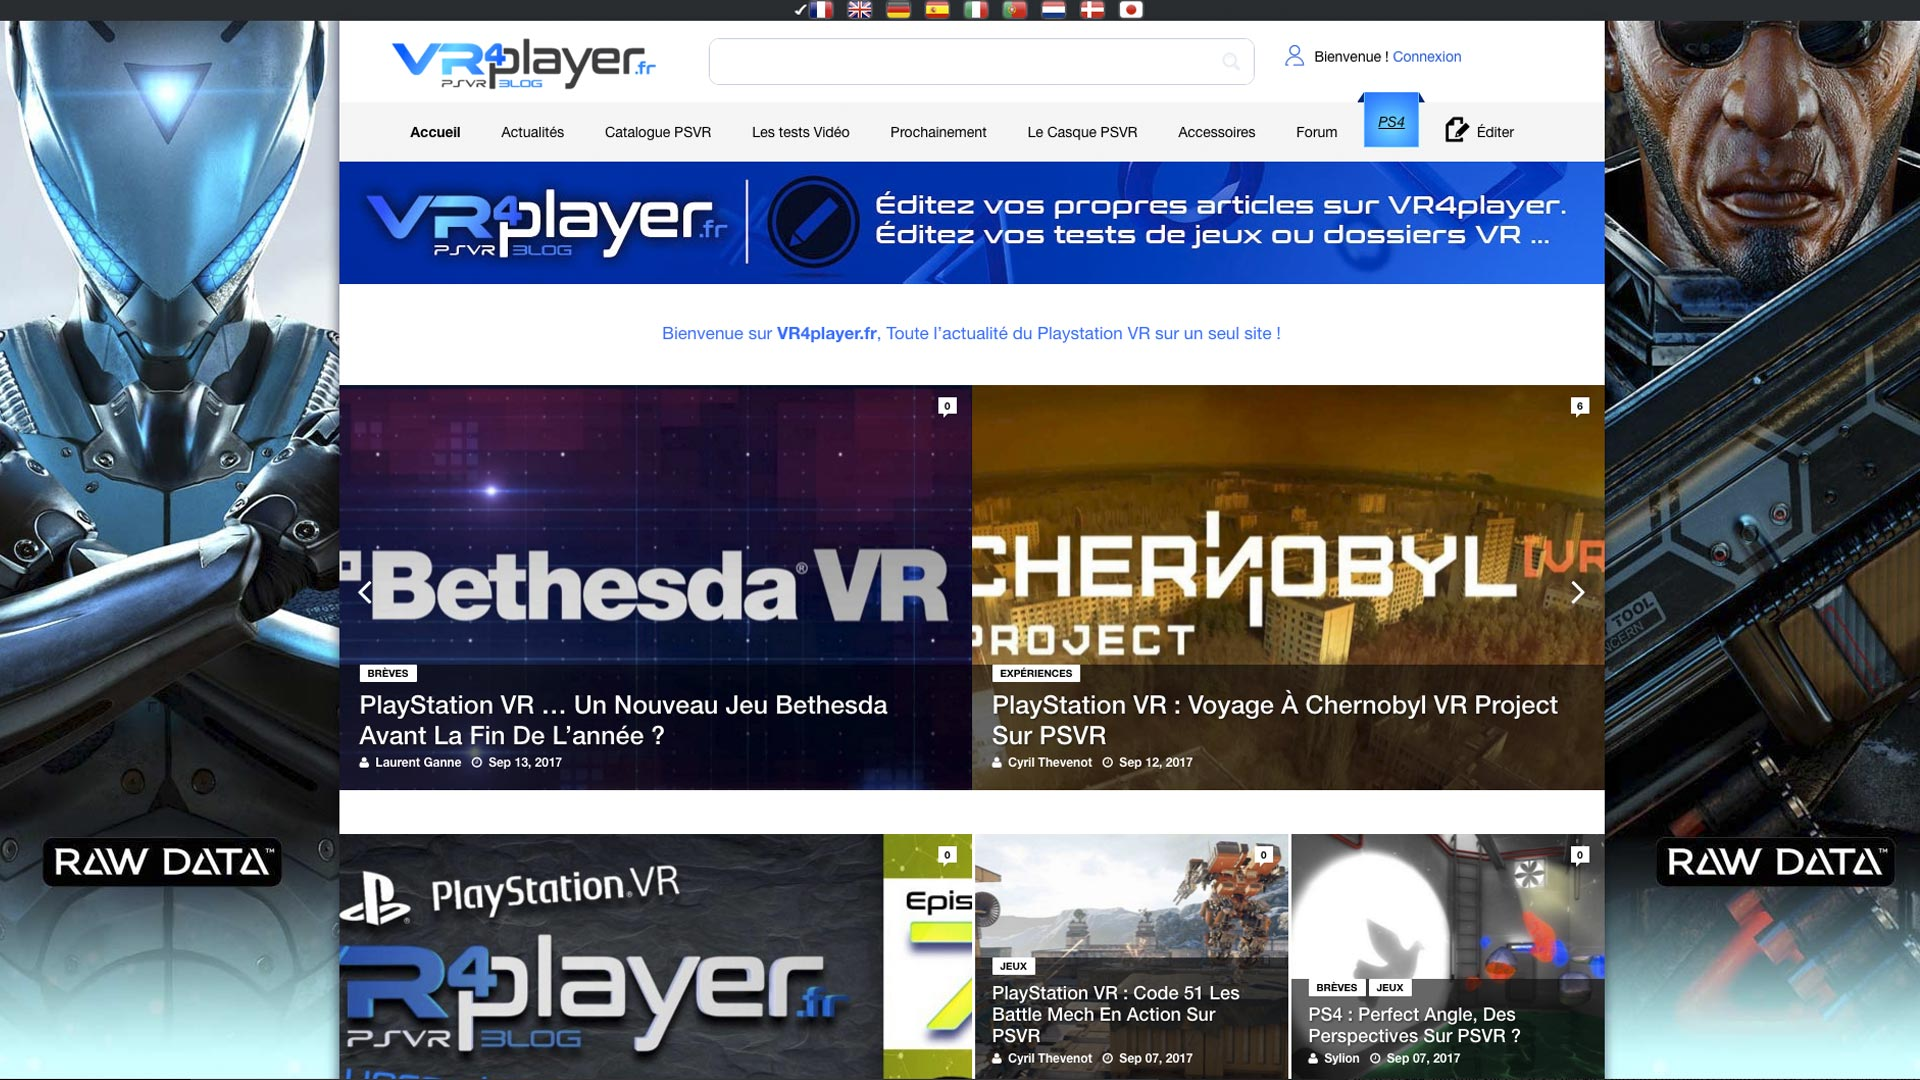 Le Site VR4player.fr